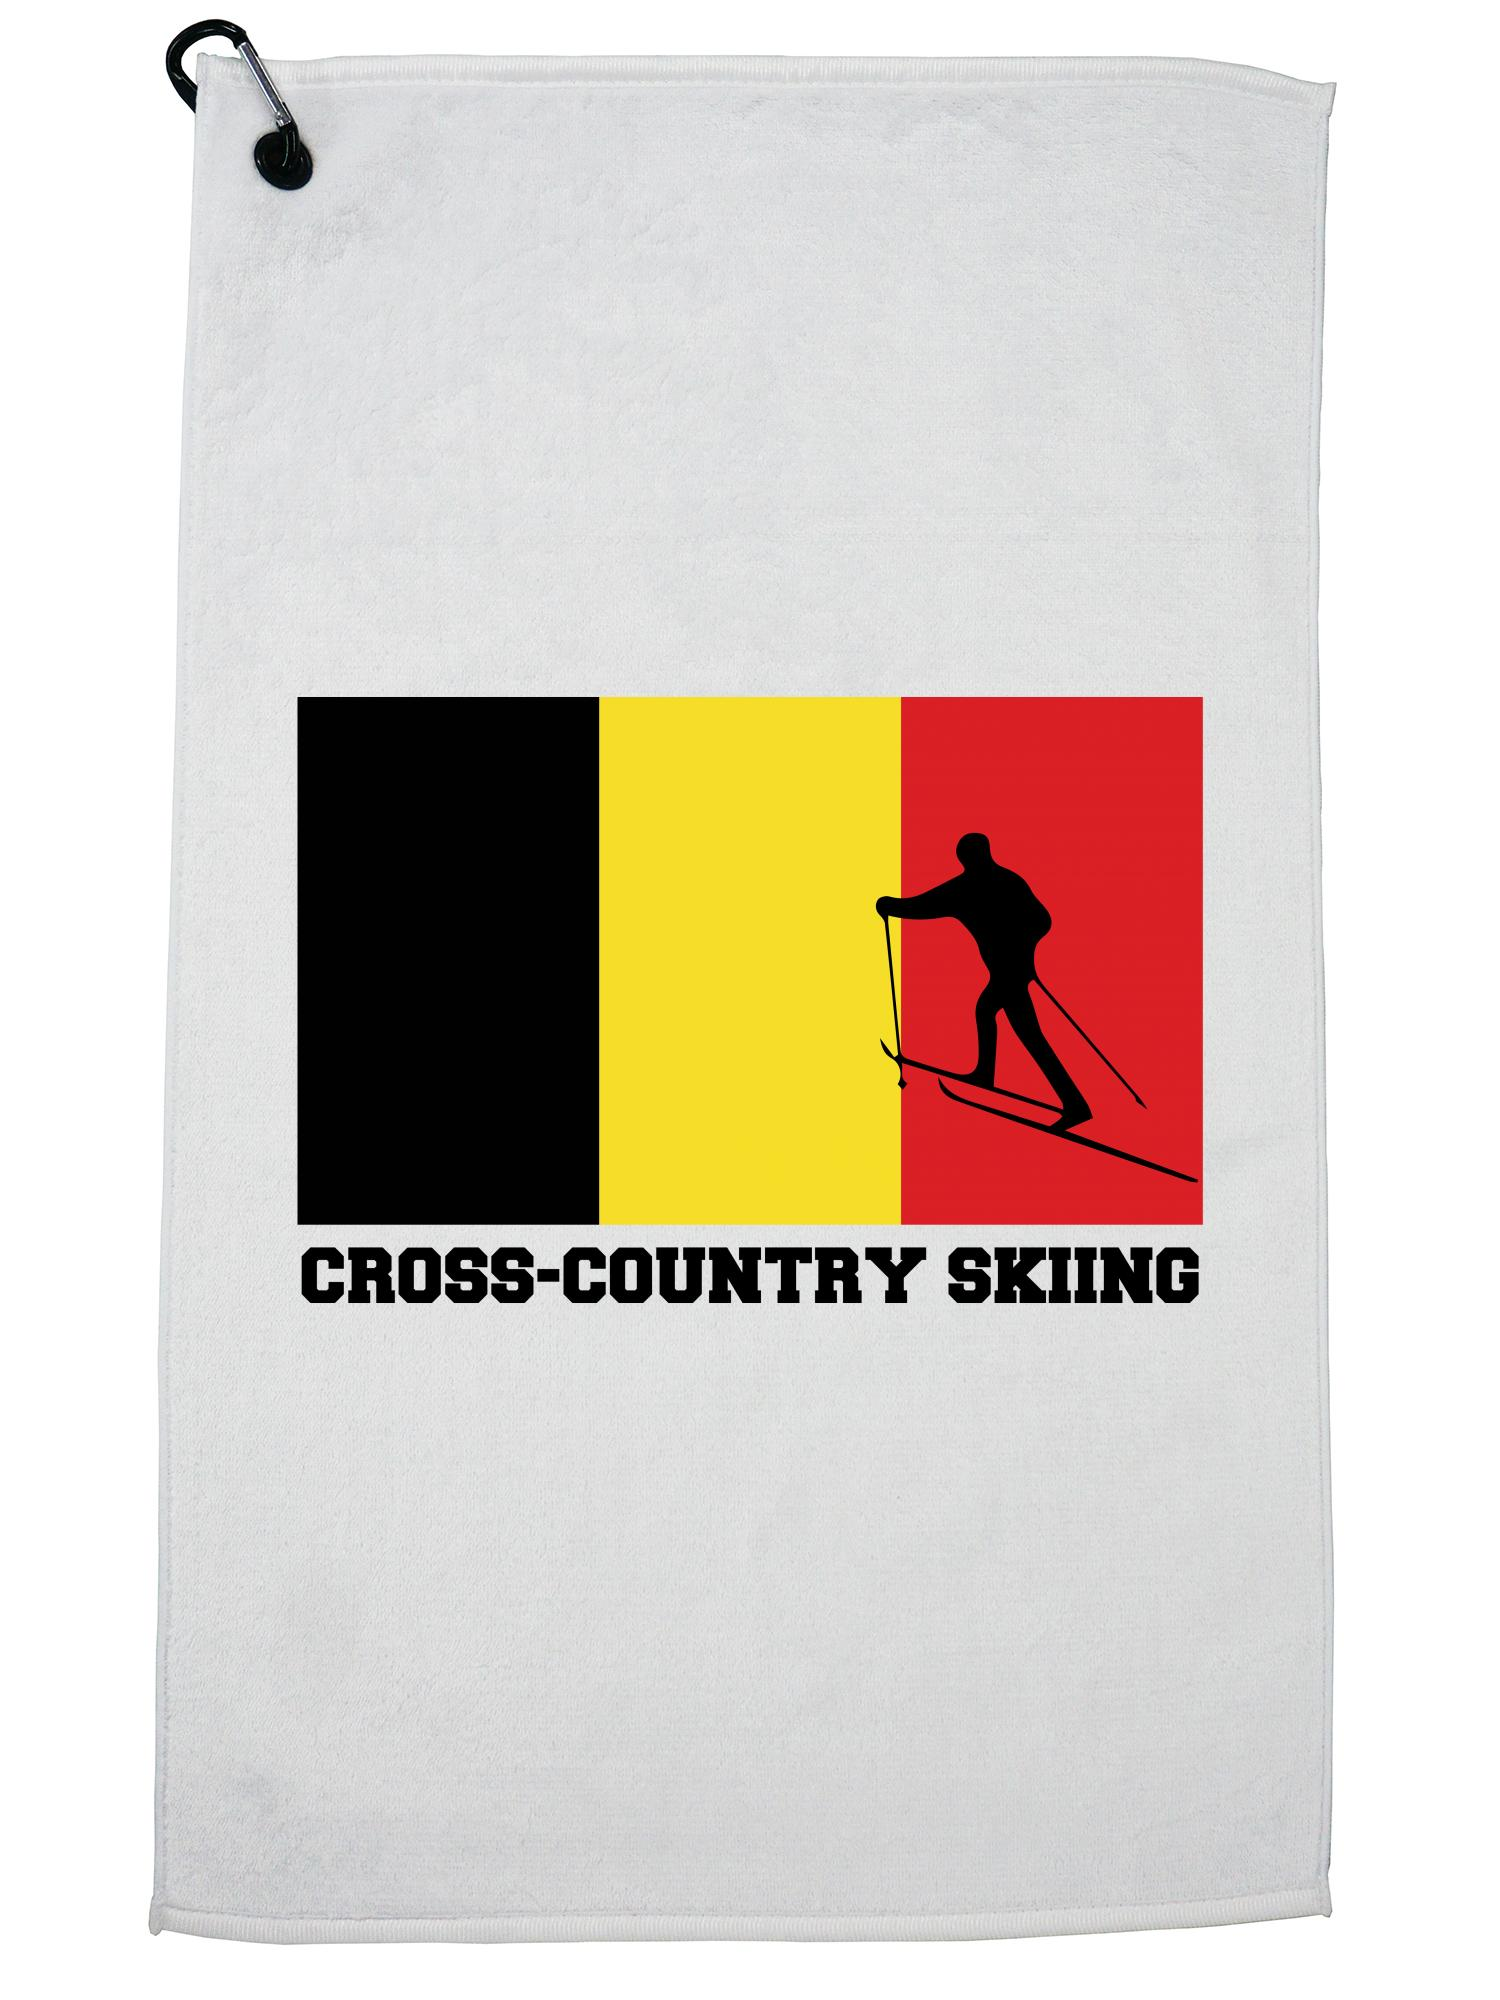 Belgium Olympic Cross-Country Skiing Flag Silhouette Golf Towel with Carabiner Clip by Hollywood Thread